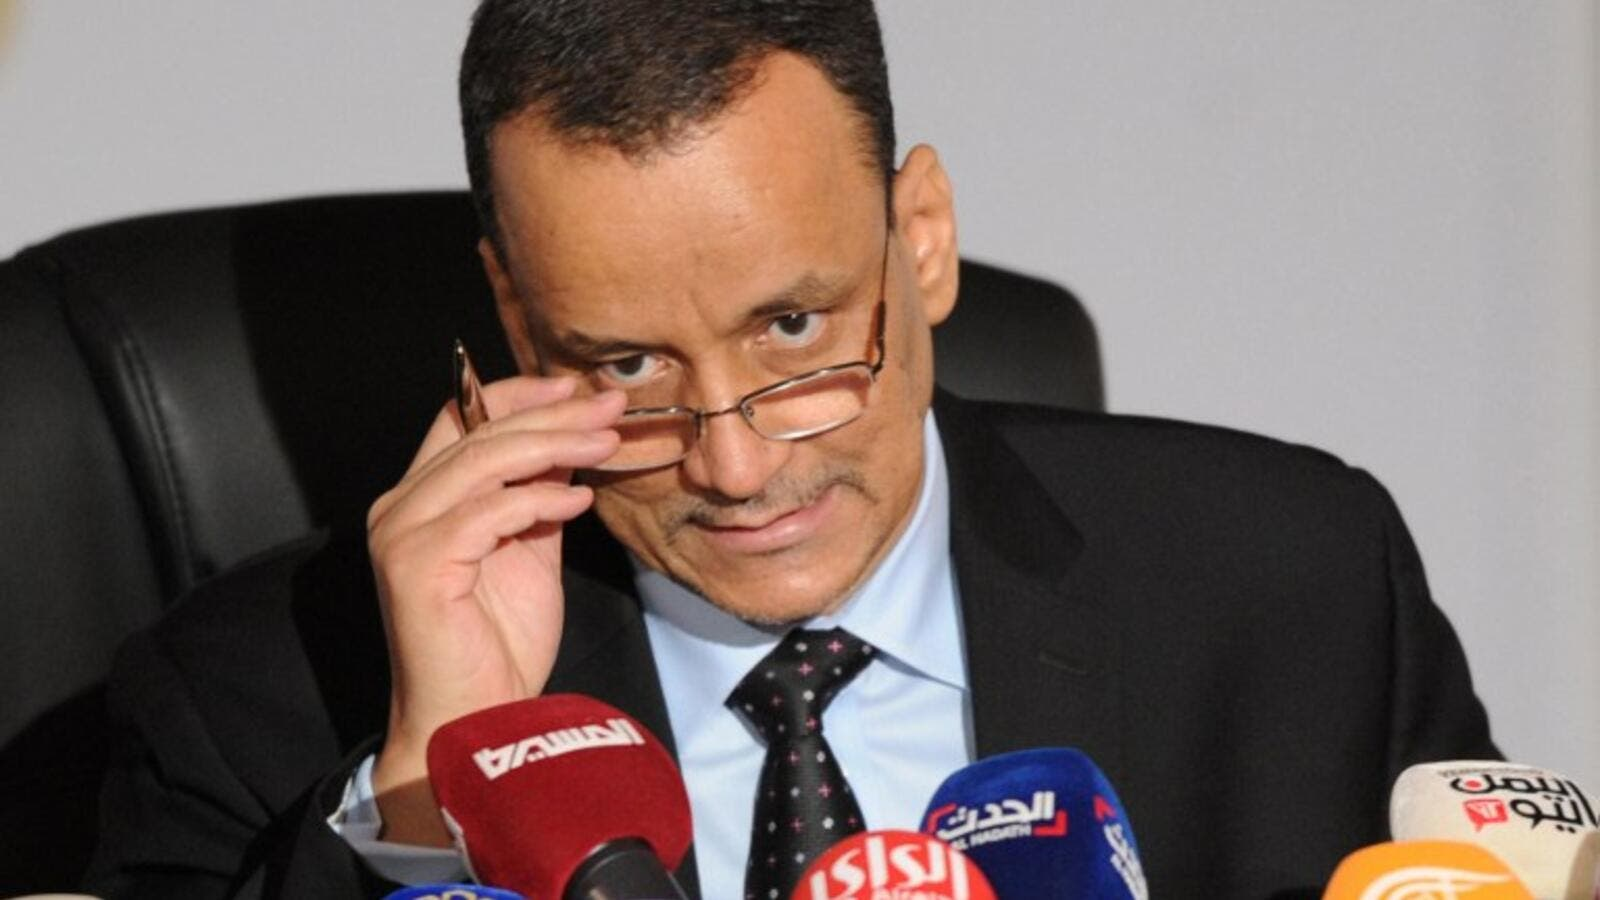 UN special envoy for Yemen, Ismail Ould Cheikh Ahmed. (AFP/Yasser Al-Zayyat)